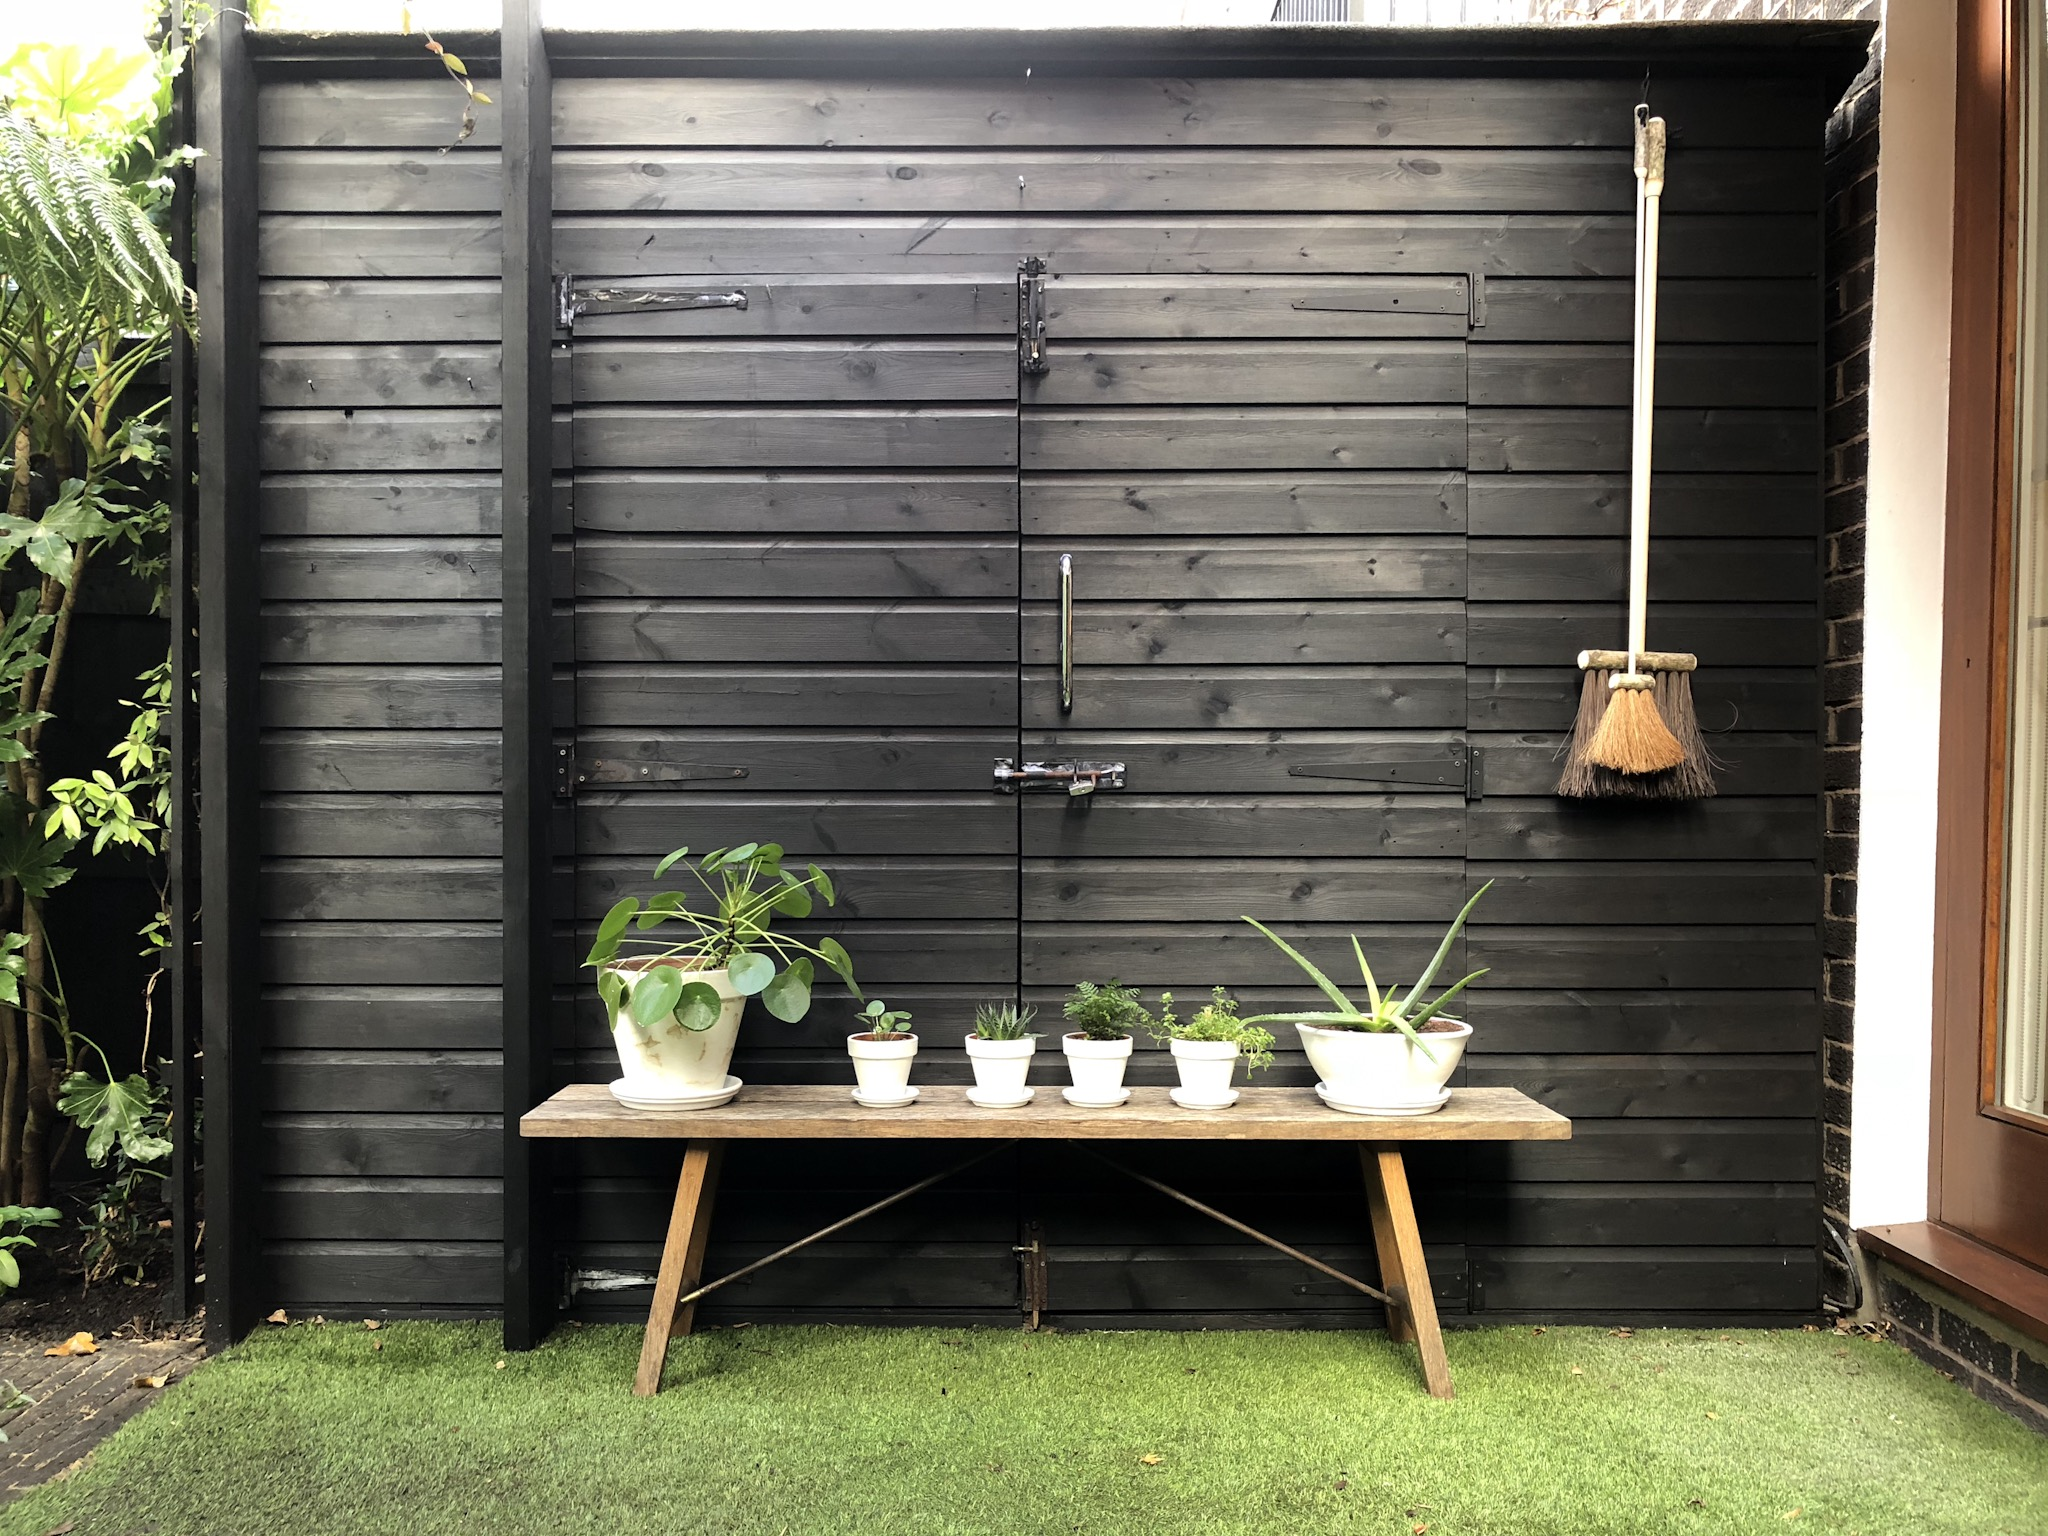 Black garden shed with bench in front and plants in white pots, paintbrush